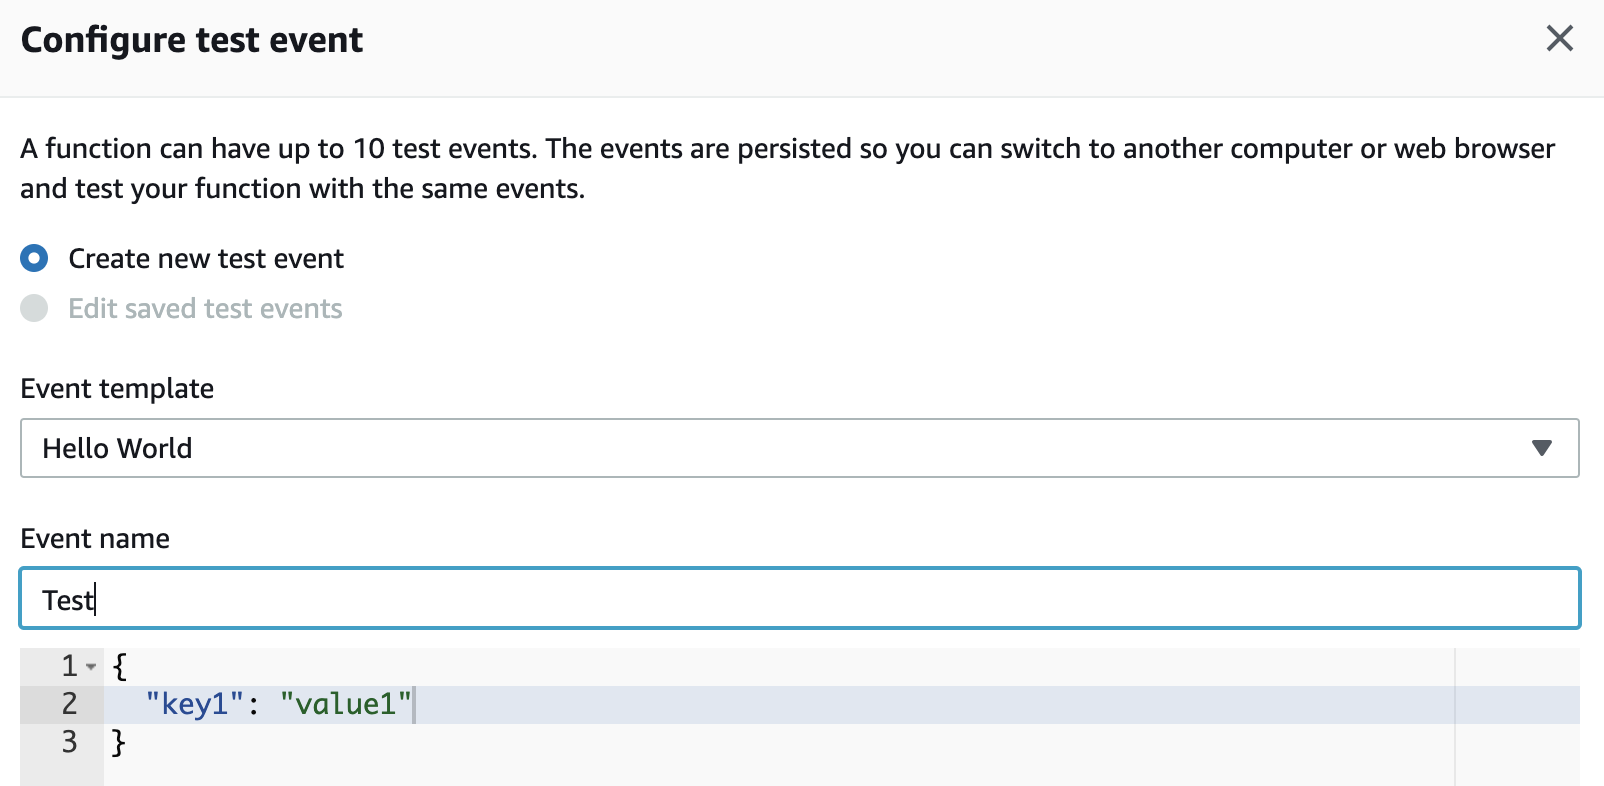 Configure the event